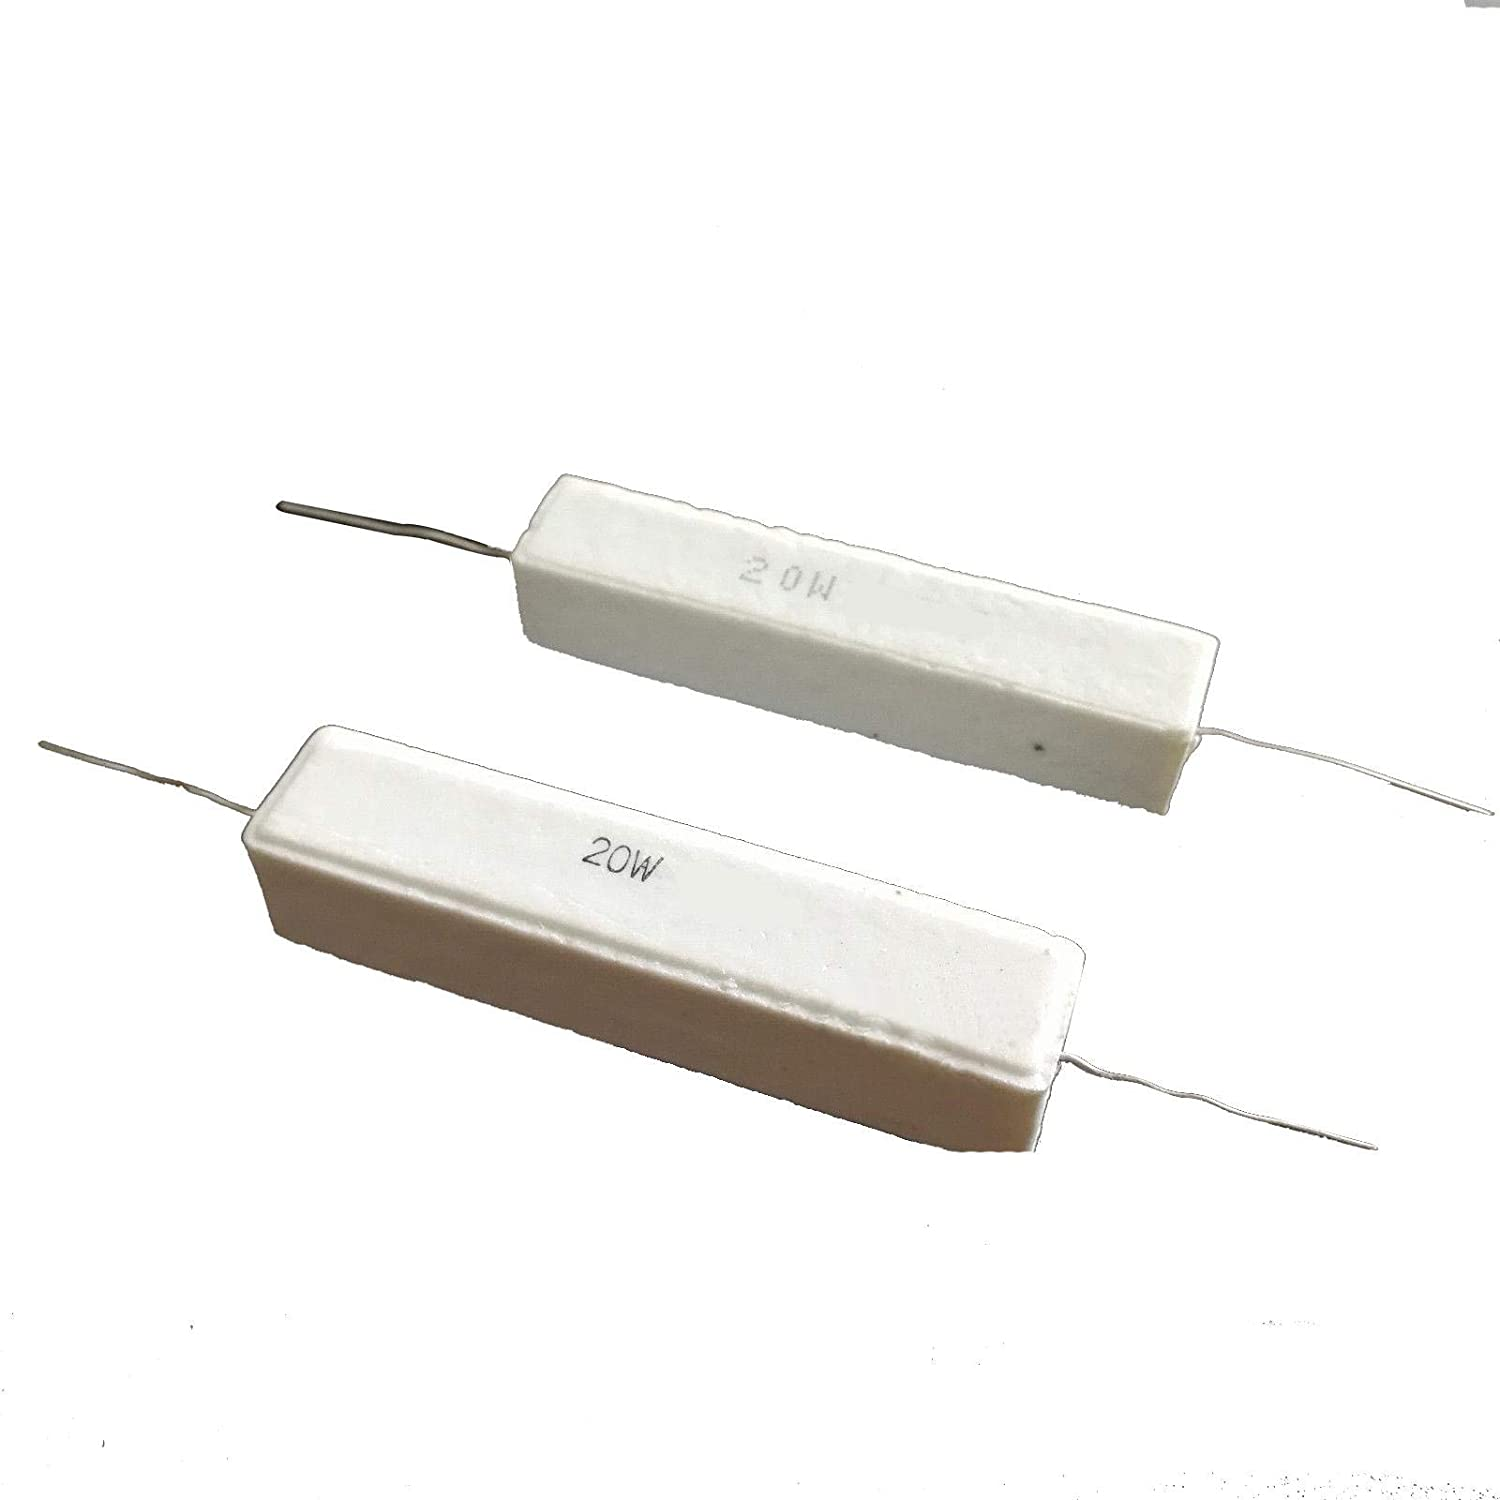 uxcell 20W 4 Ohm Power Resistor Ceramic Cement Resistor Axial Lead White 5pcs